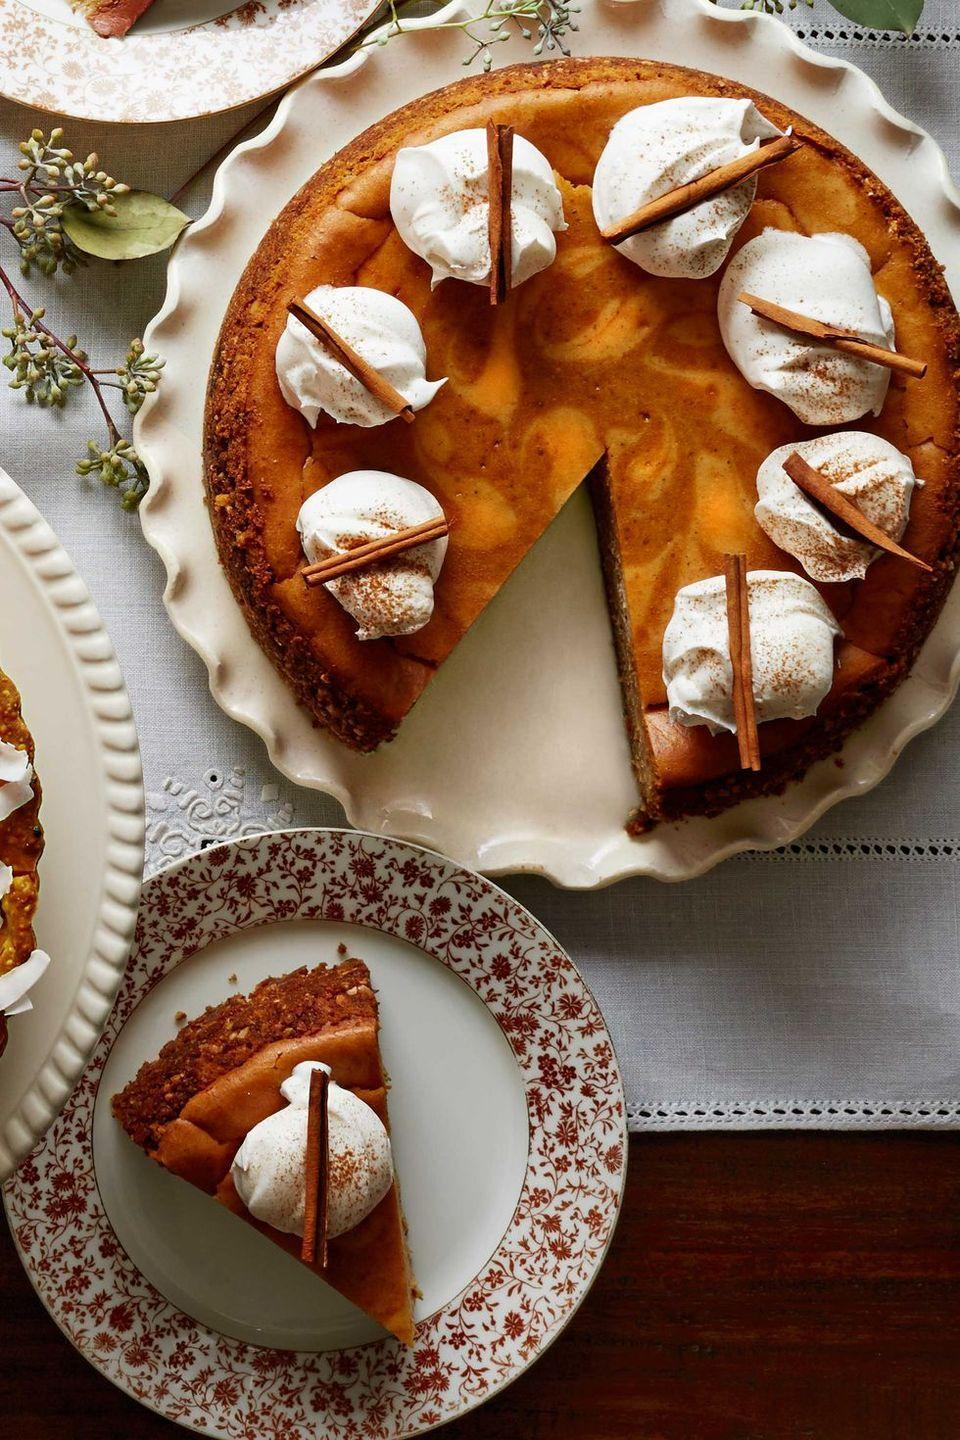 "<p>Put down the <a href=""https://www.womansday.com/food-recipes/food-drinks/a55831/homemade-pumpkin-spice-coffee-syrup-recipe/"" rel=""nofollow noopener"" target=""_blank"" data-ylk=""slk:pumpkin spice latte"" class=""link rapid-noclick-resp"">pumpkin spice latte</a> and grab a slice of <span class=""redactor-unlink"">this cheesecake</span> to satisfy all your fall-flavor cravings. </p><p><strong><em><a href=""https://www.womansday.com/food-recipes/food-drinks/recipes/a40045/spiced-pumpkin-latte-cheesecake-recipe-clx1114/"" rel=""nofollow noopener"" target=""_blank"" data-ylk=""slk:Get the Spiced Pumpkin Latte Cheesecake recipe."" class=""link rapid-noclick-resp"">Get the Spiced Pumpkin Latte Cheesecake recipe. </a></em></strong></p>"